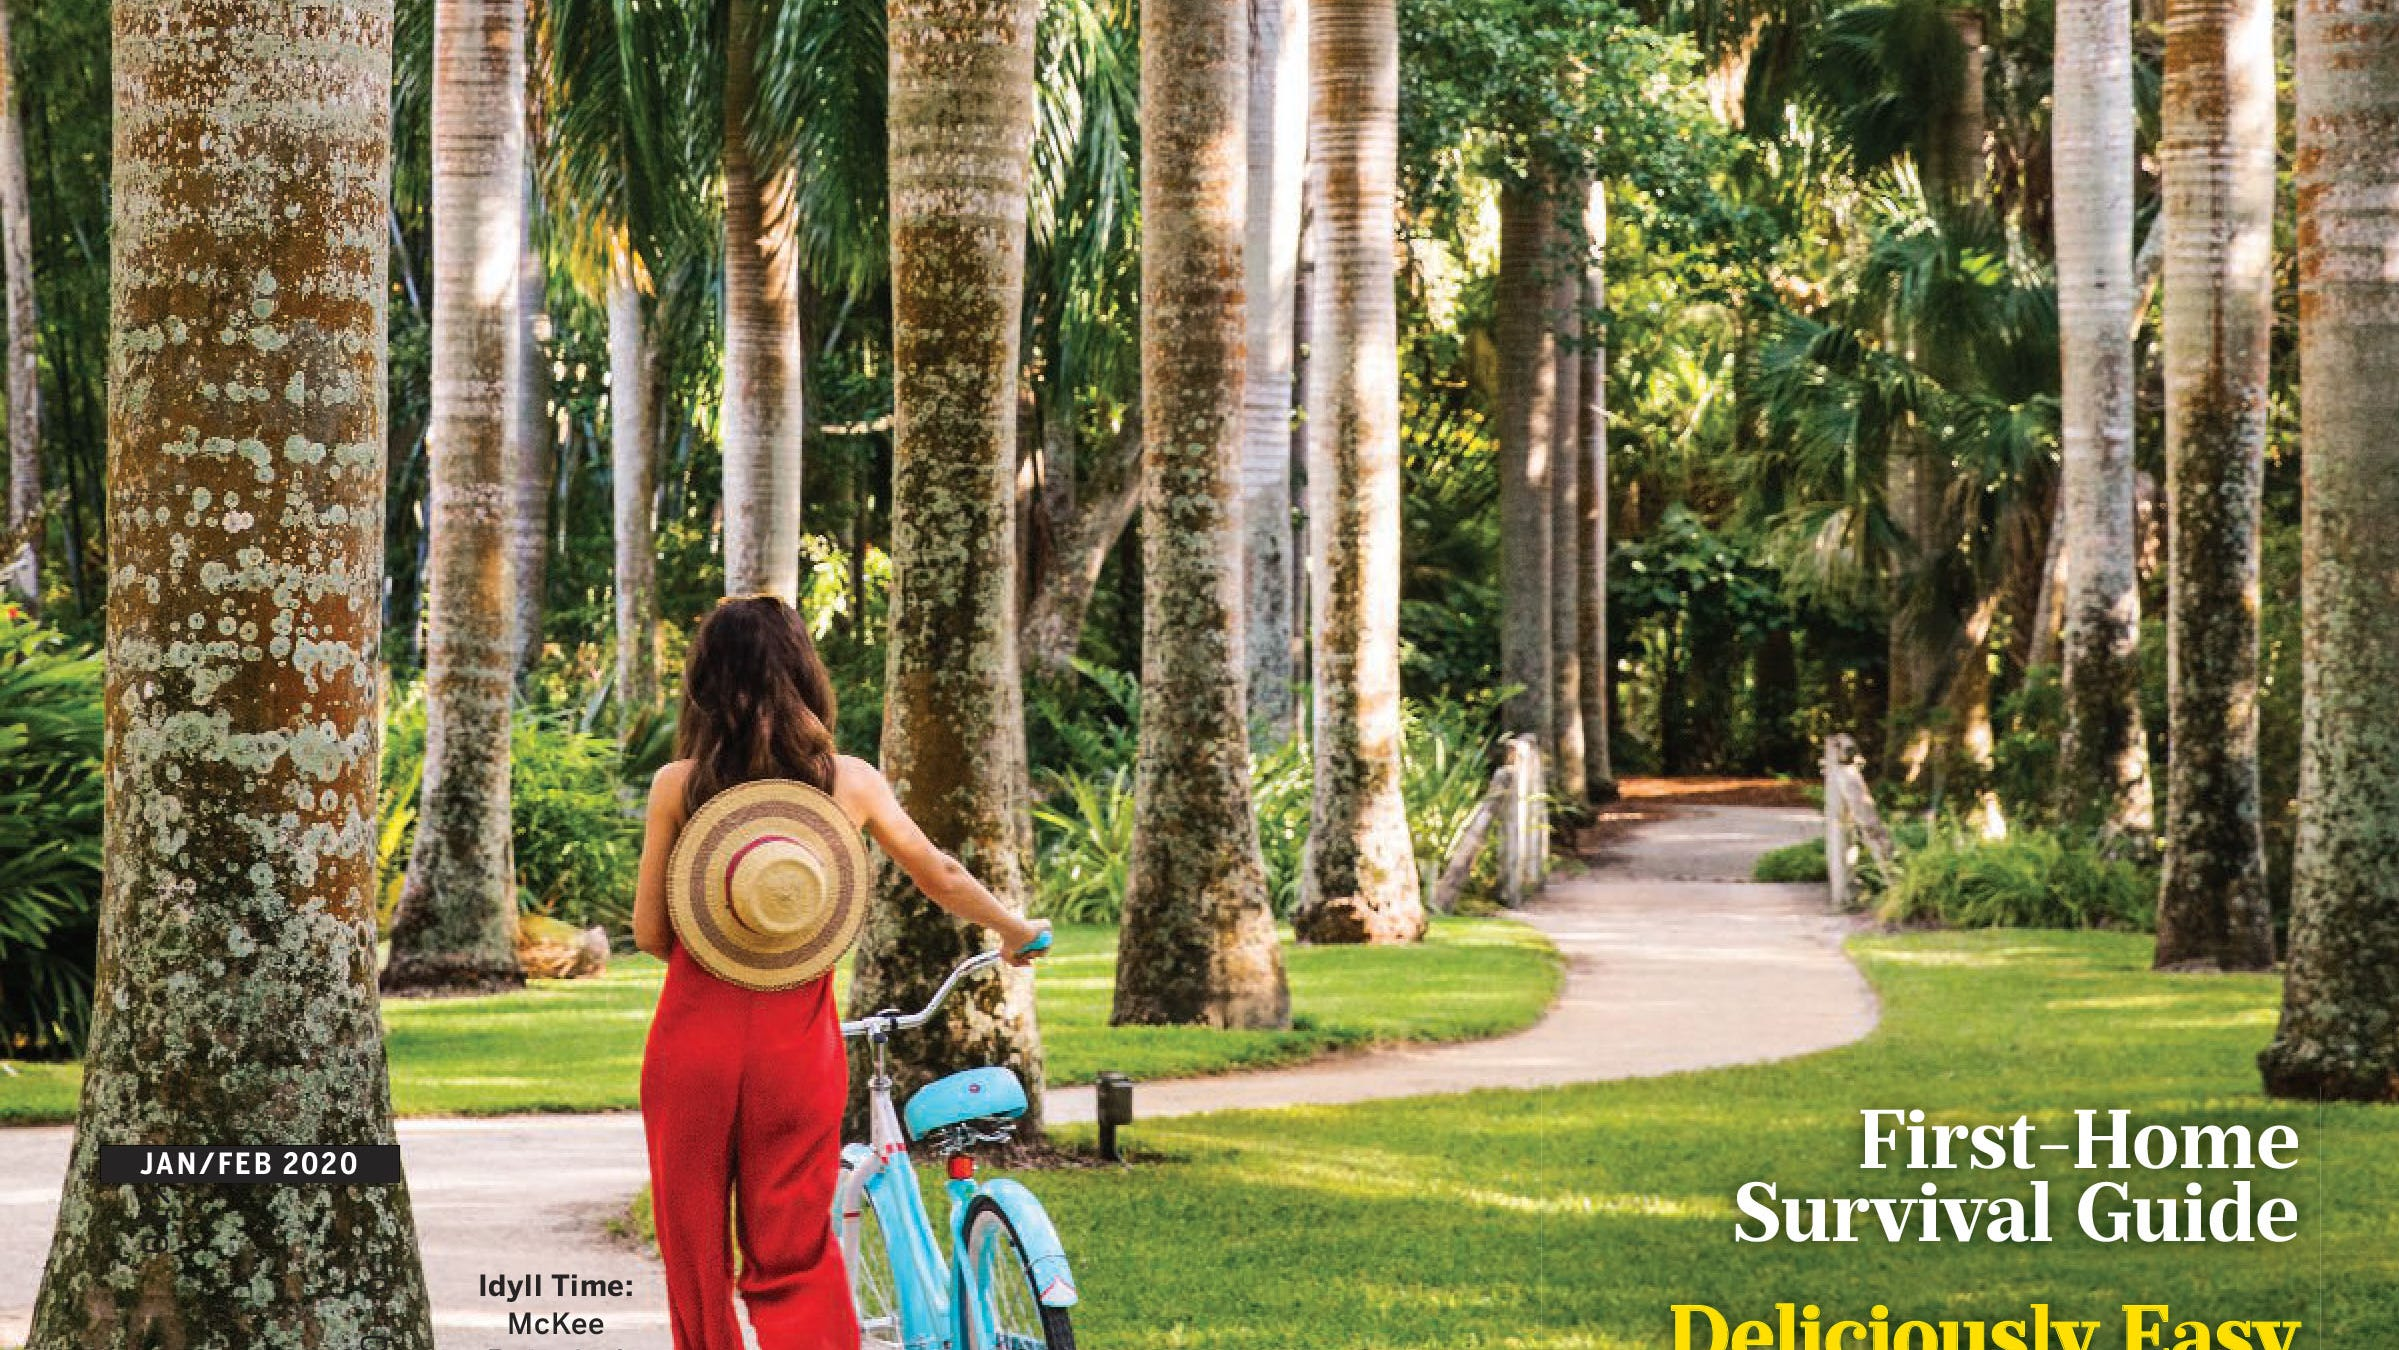 McKee, Vero Beach grace cover of Southern Living